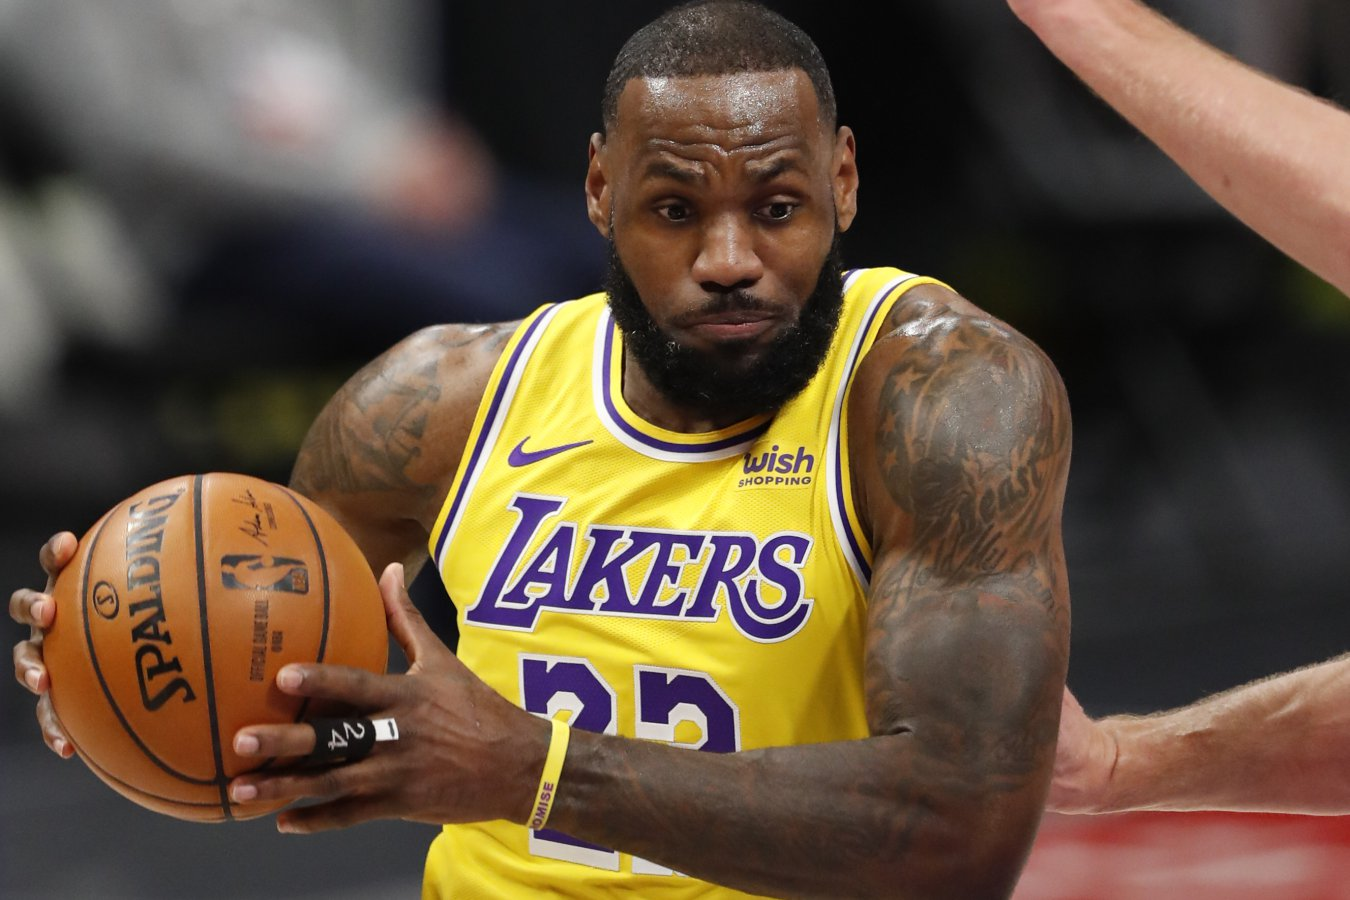 LeBron James (alero, Los Angeles Lakers)